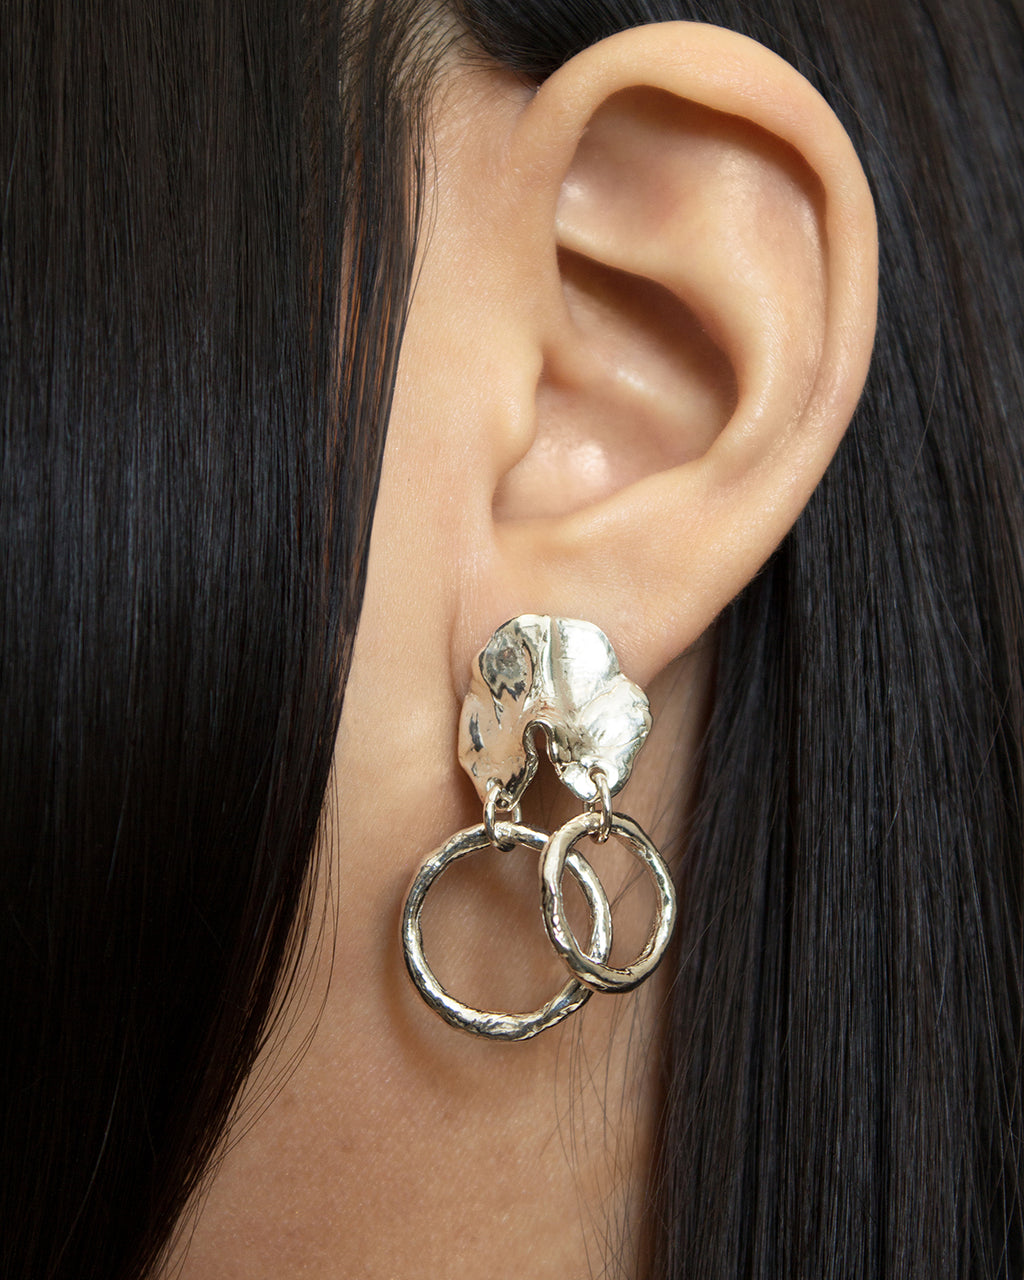 GINETTE // silver - ORA-C jewelry - handmade jewelry by Montreal based independent designer Caroline Pham